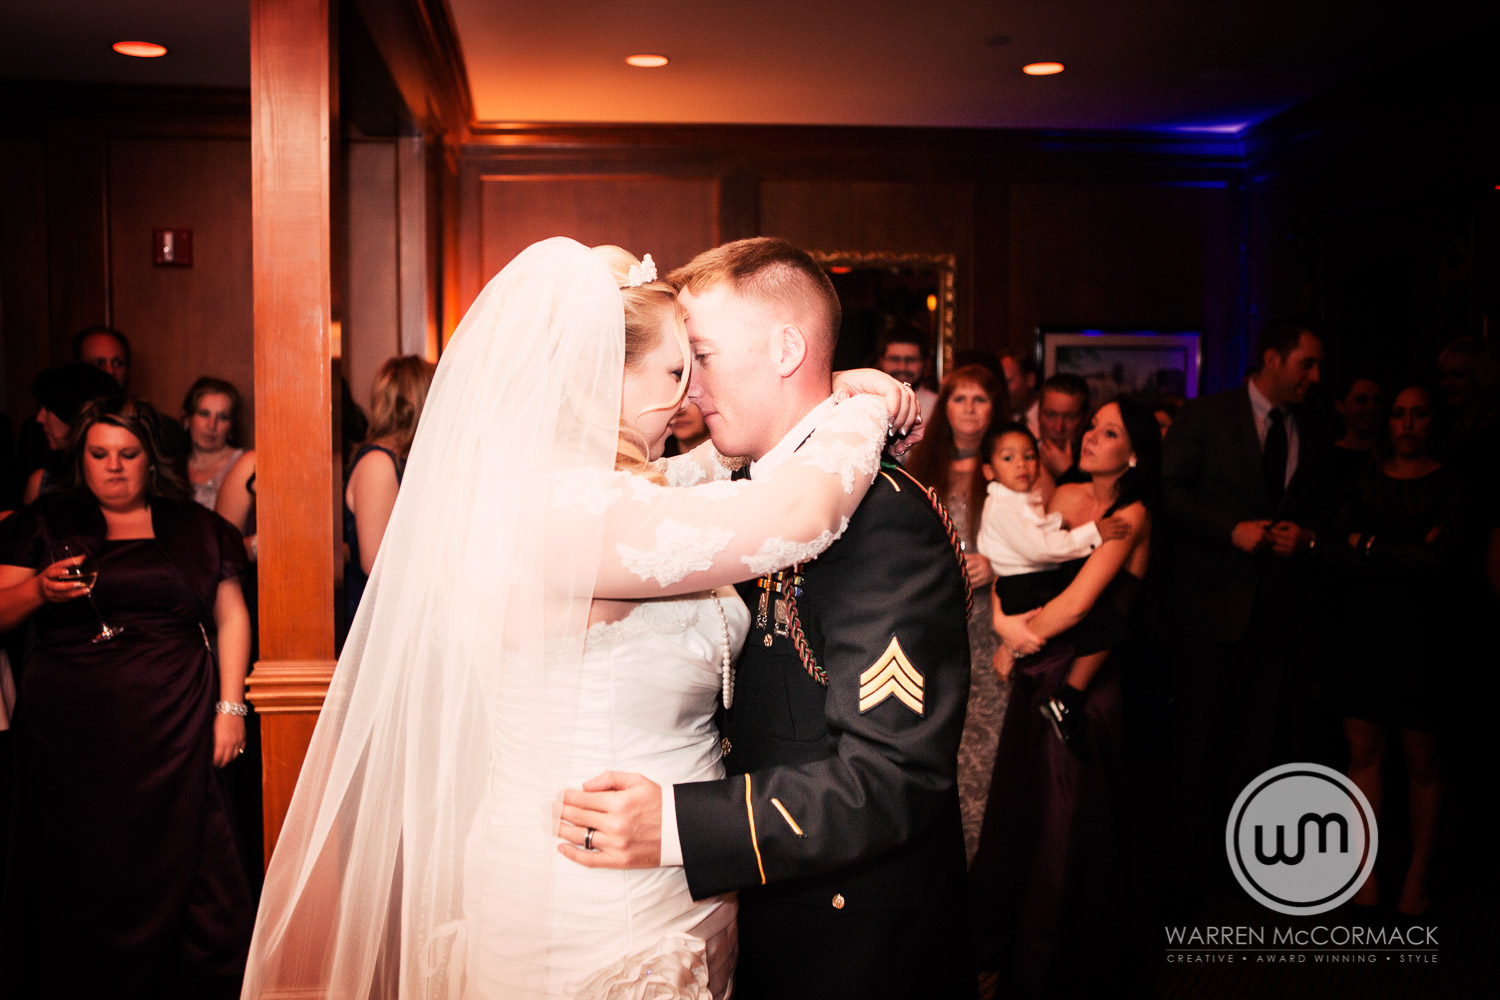 raleigh_wedding_photographer_0013.jpg